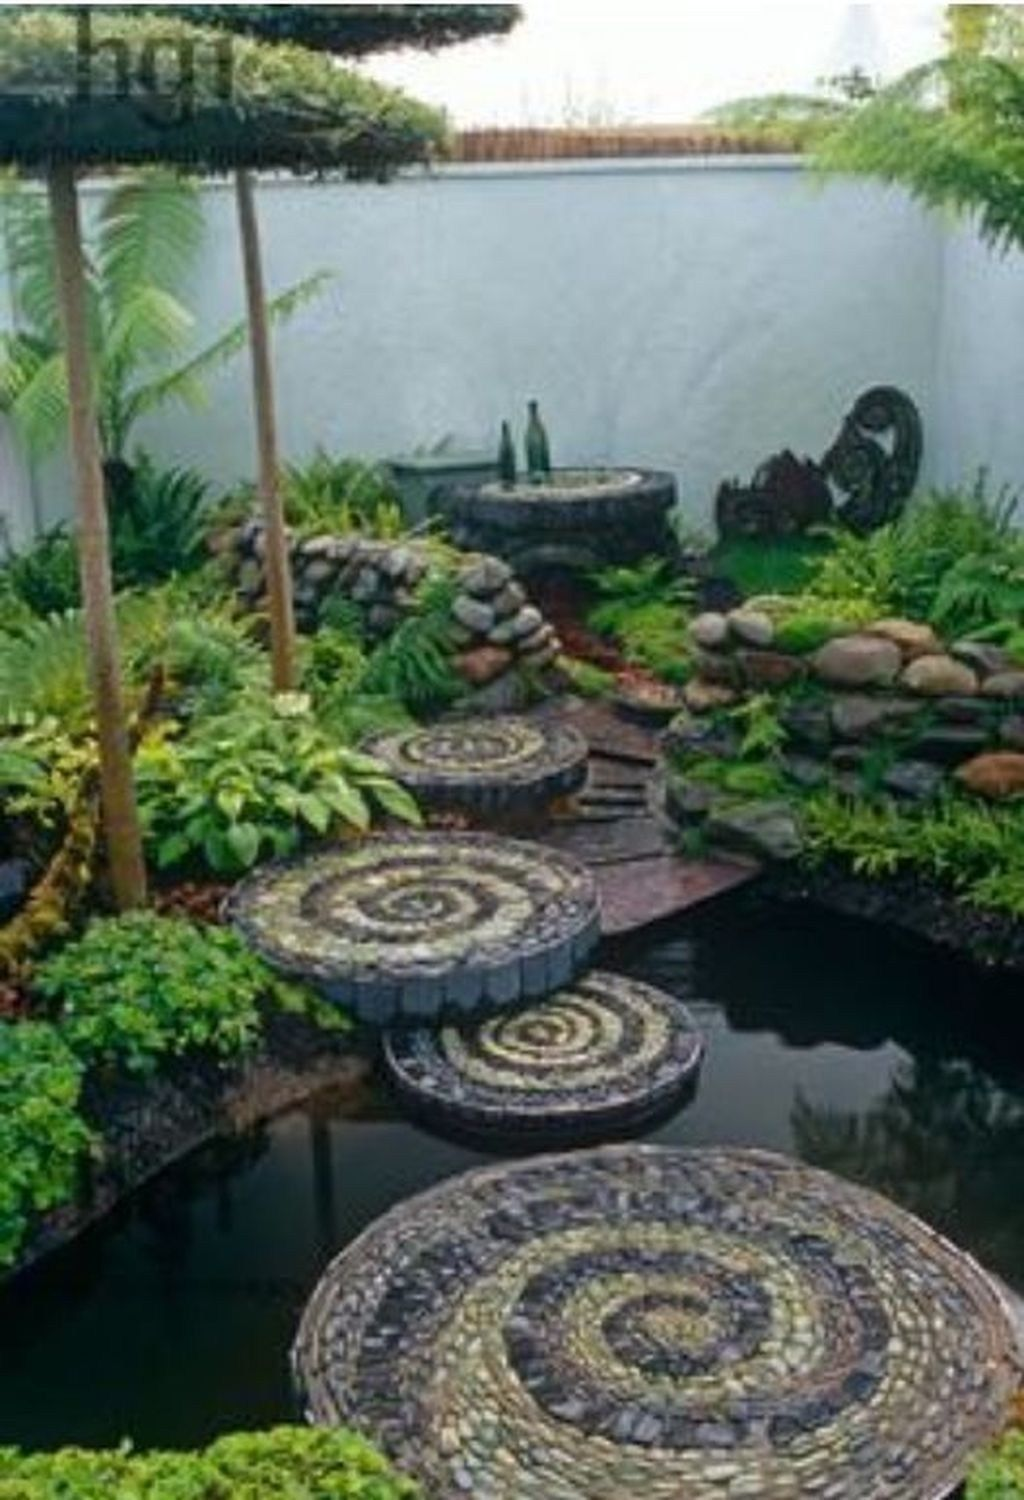 46 Inspiring Stepping Stones Pathway Ideas For Your Garden #steppingstonespathway Inspiring Stepping Stones Pathway Ideas For Your Garden 44 #steppingstonespathway 46 Inspiring Stepping Stones Pathway Ideas For Your Garden #steppingstonespathway Inspiring Stepping Stones Pathway Ideas For Your Garden 44 #steppingstonespathway 46 Inspiring Stepping Stones Pathway Ideas For Your Garden #steppingstonespathway Inspiring Stepping Stones Pathway Ideas For Your Garden 44 #steppingstonespathway 46 Inspi #steppingstonespathway